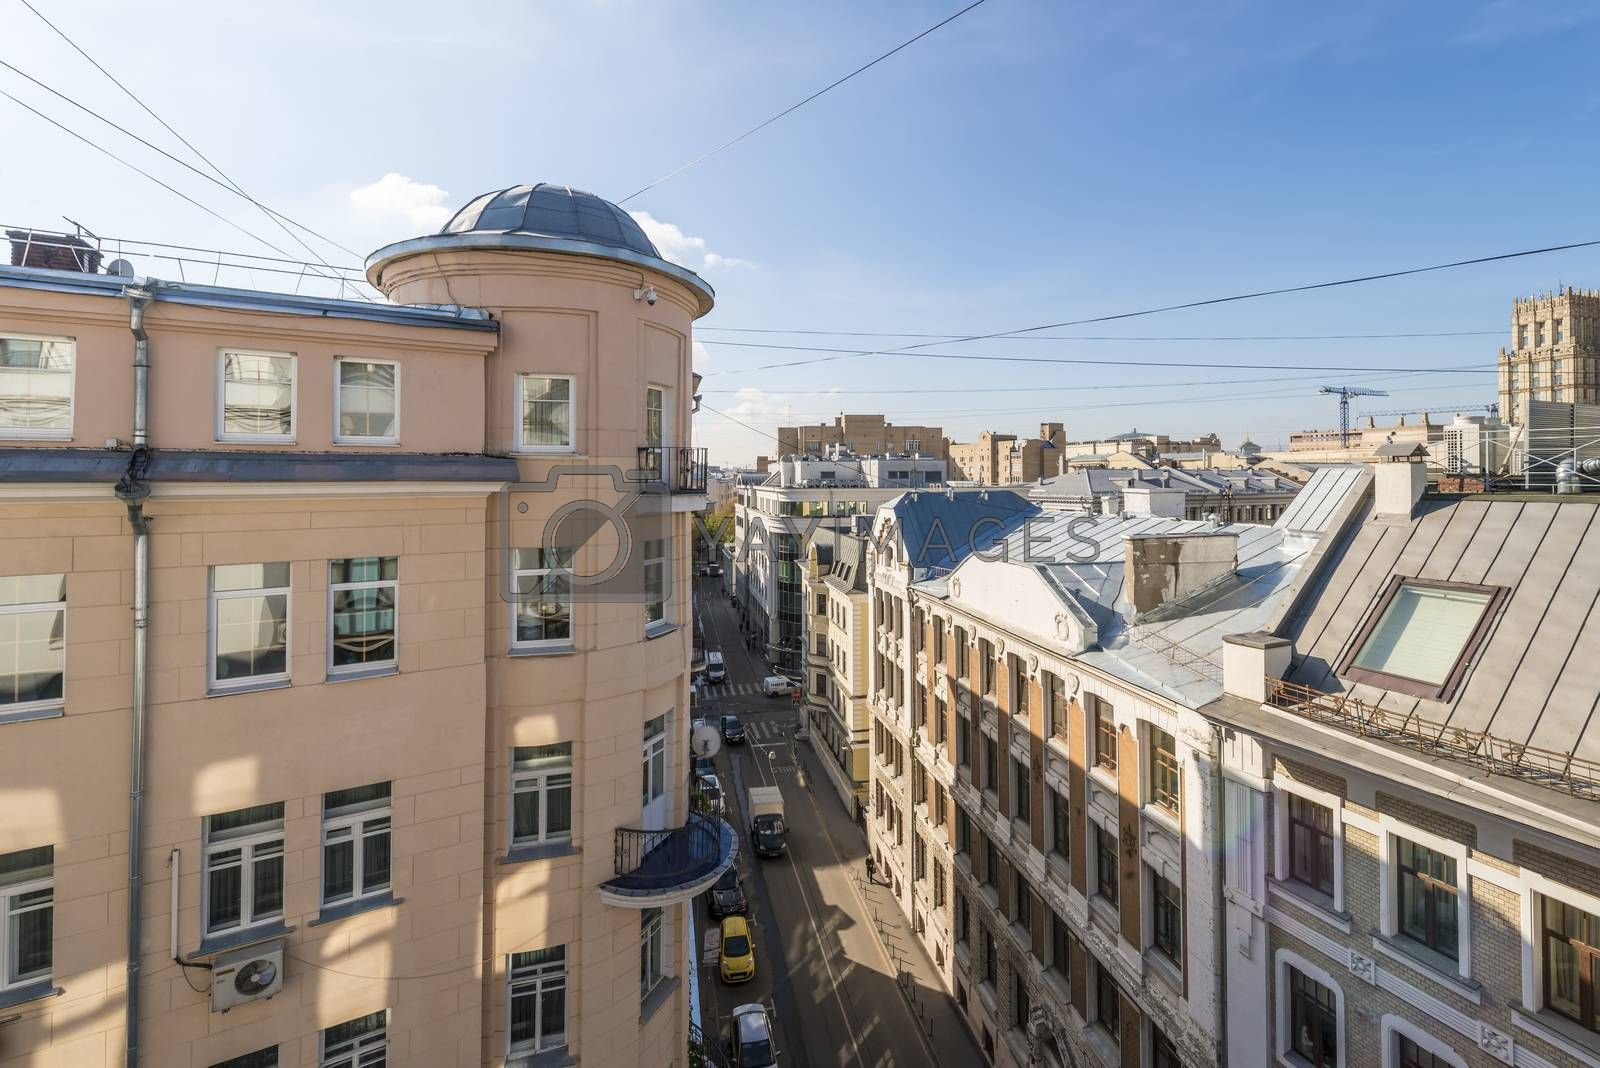 Houses and streets of the historical center of Moscow